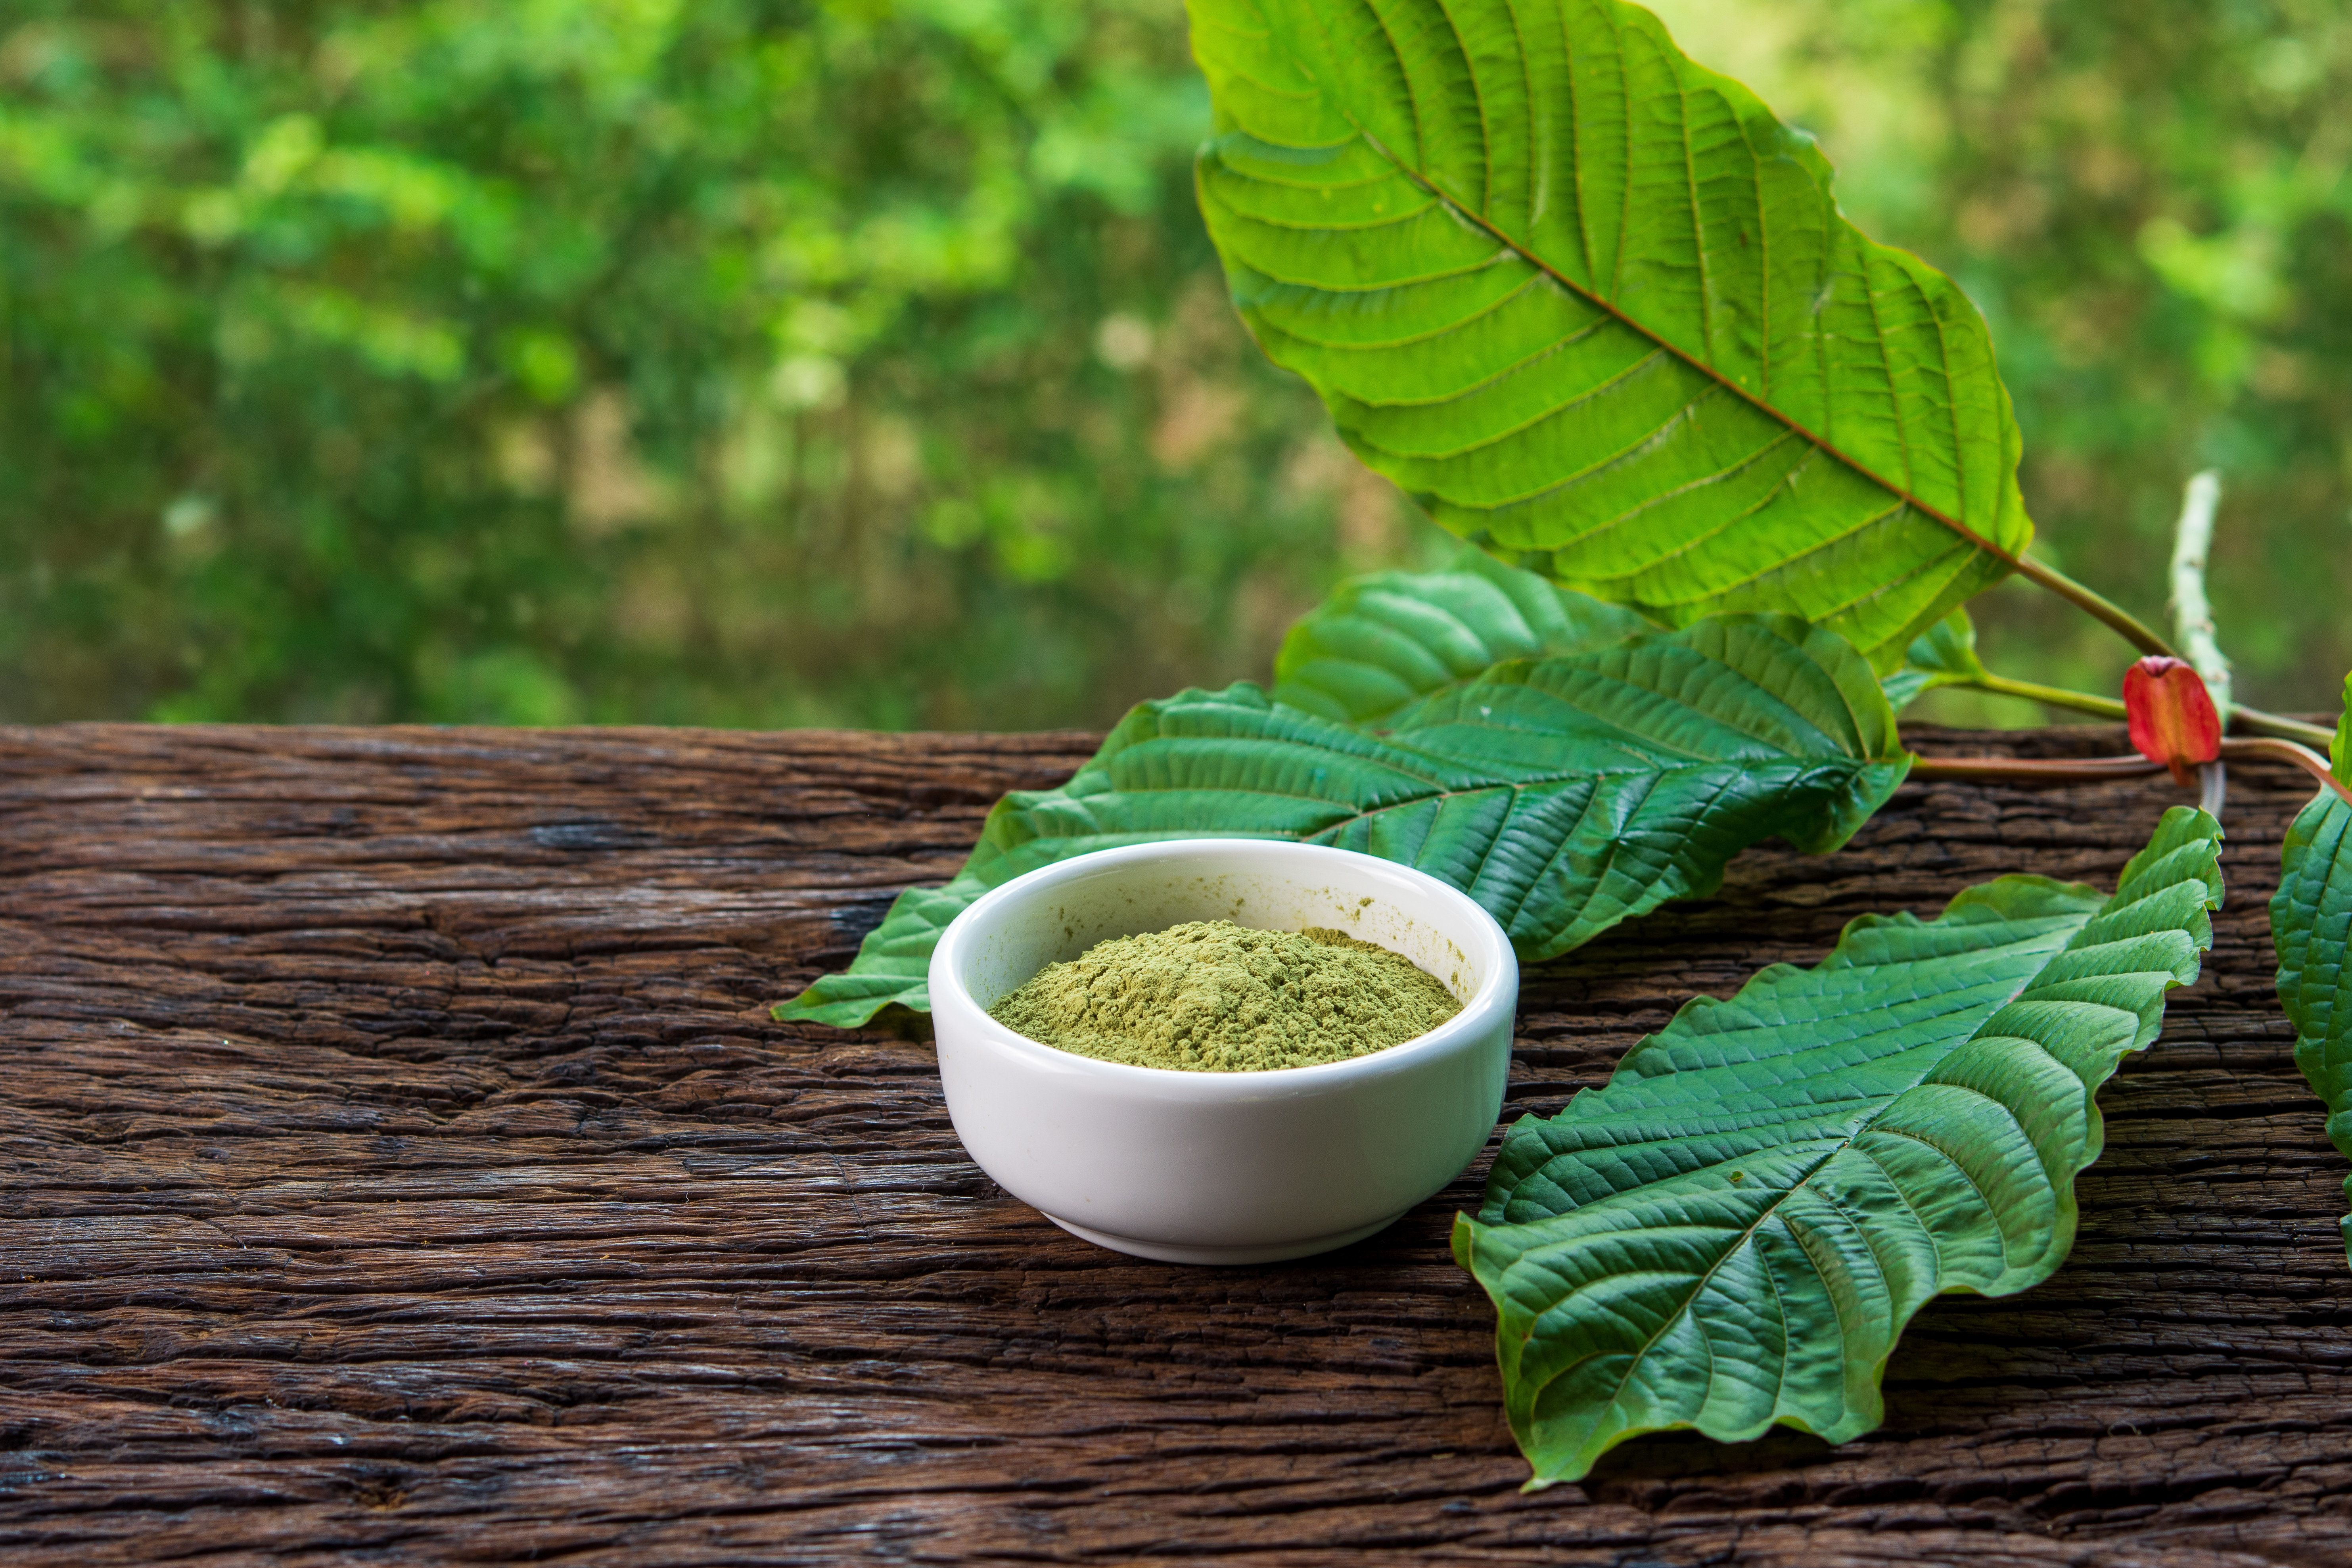 The kratom powder comes from the leaves of a Southeast Asian tree of the coffee family. At least 11 kratom shops in the center